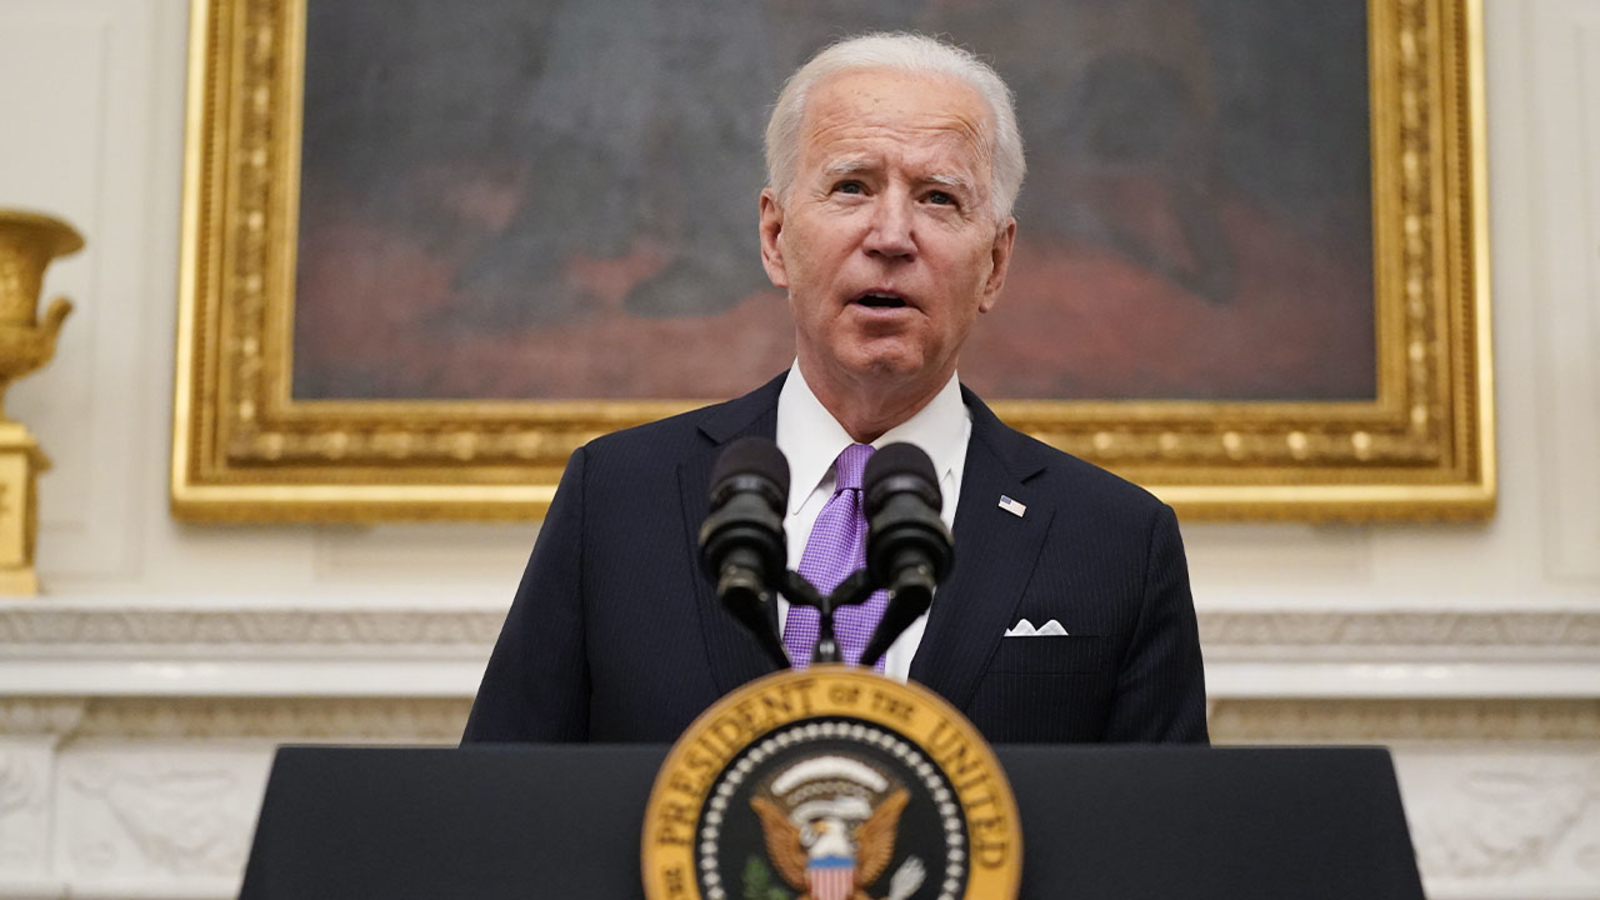 President Biden signs burst of COVID-19 orders, requires masks for travel, lays groundwork for reopening schools | LIVE